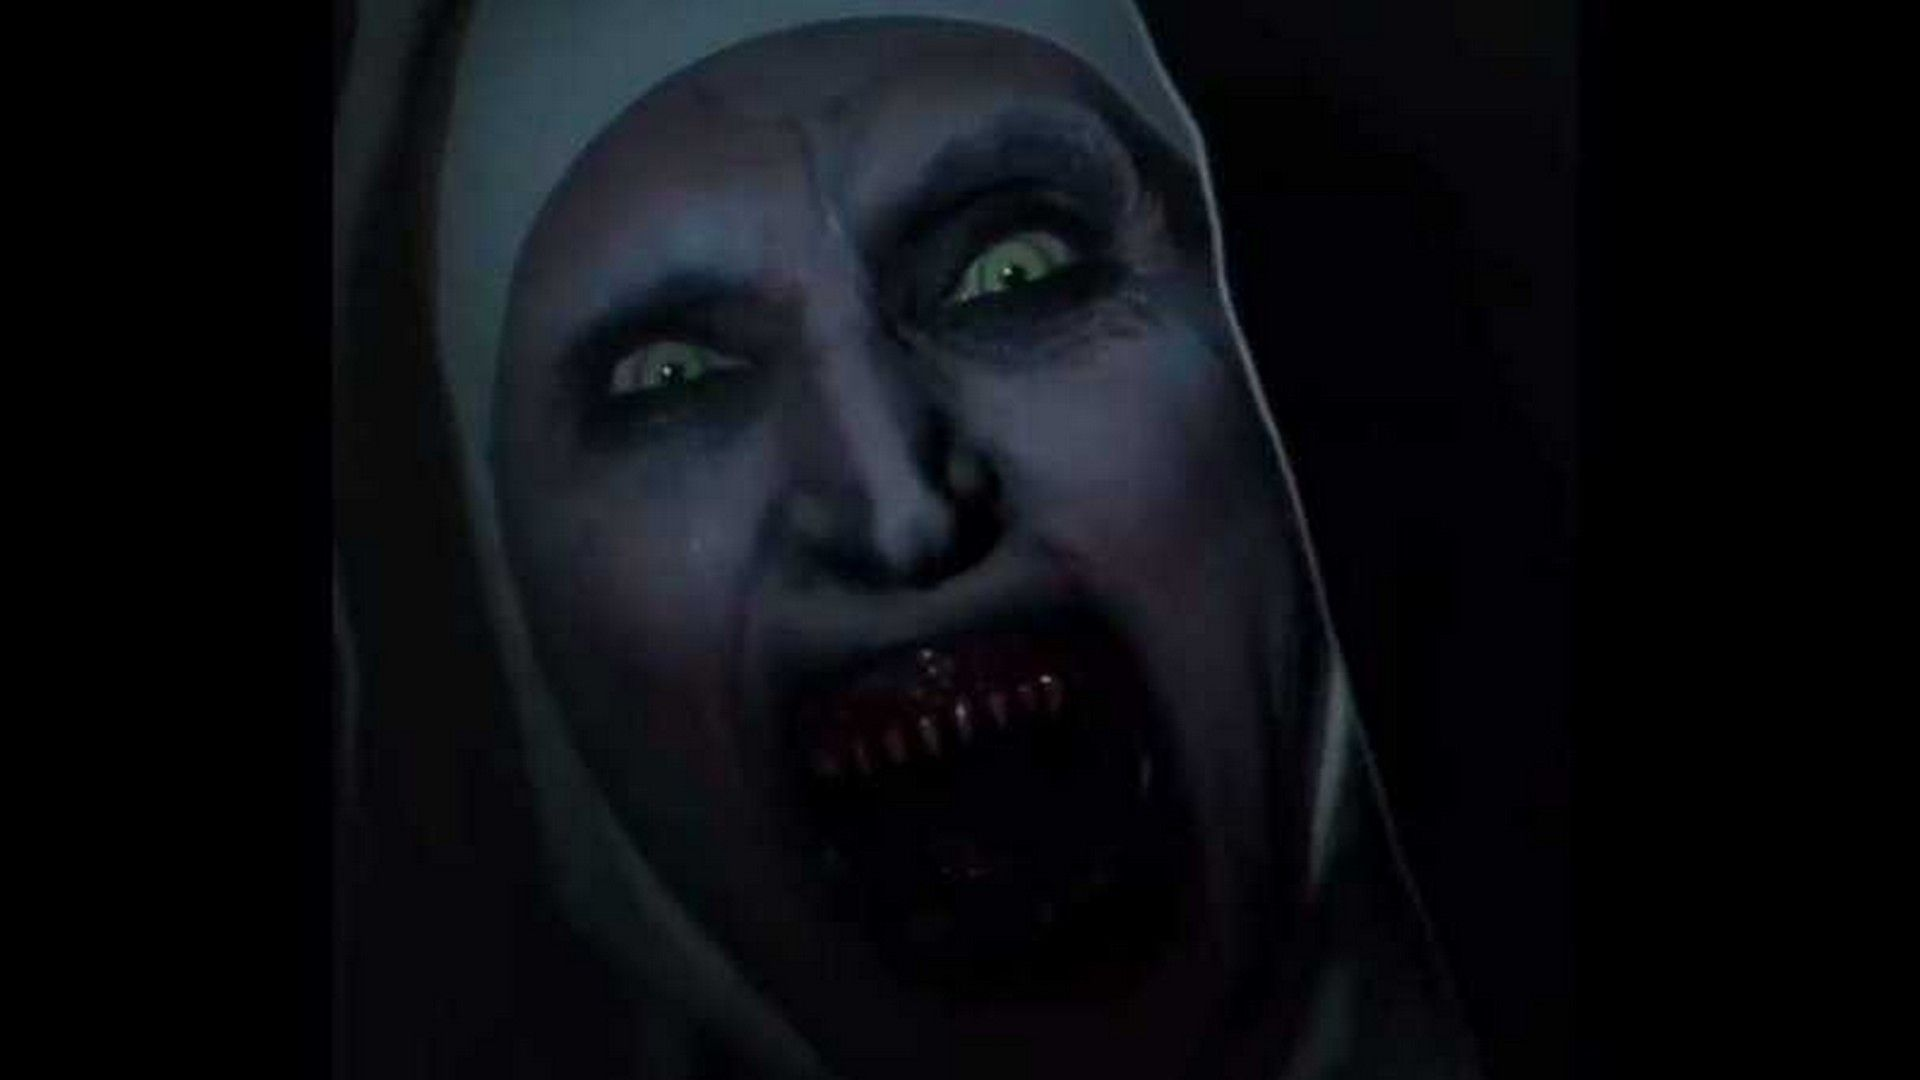 The Nun Valak Wallpaper HD | Wallpaper | Pinterest ...